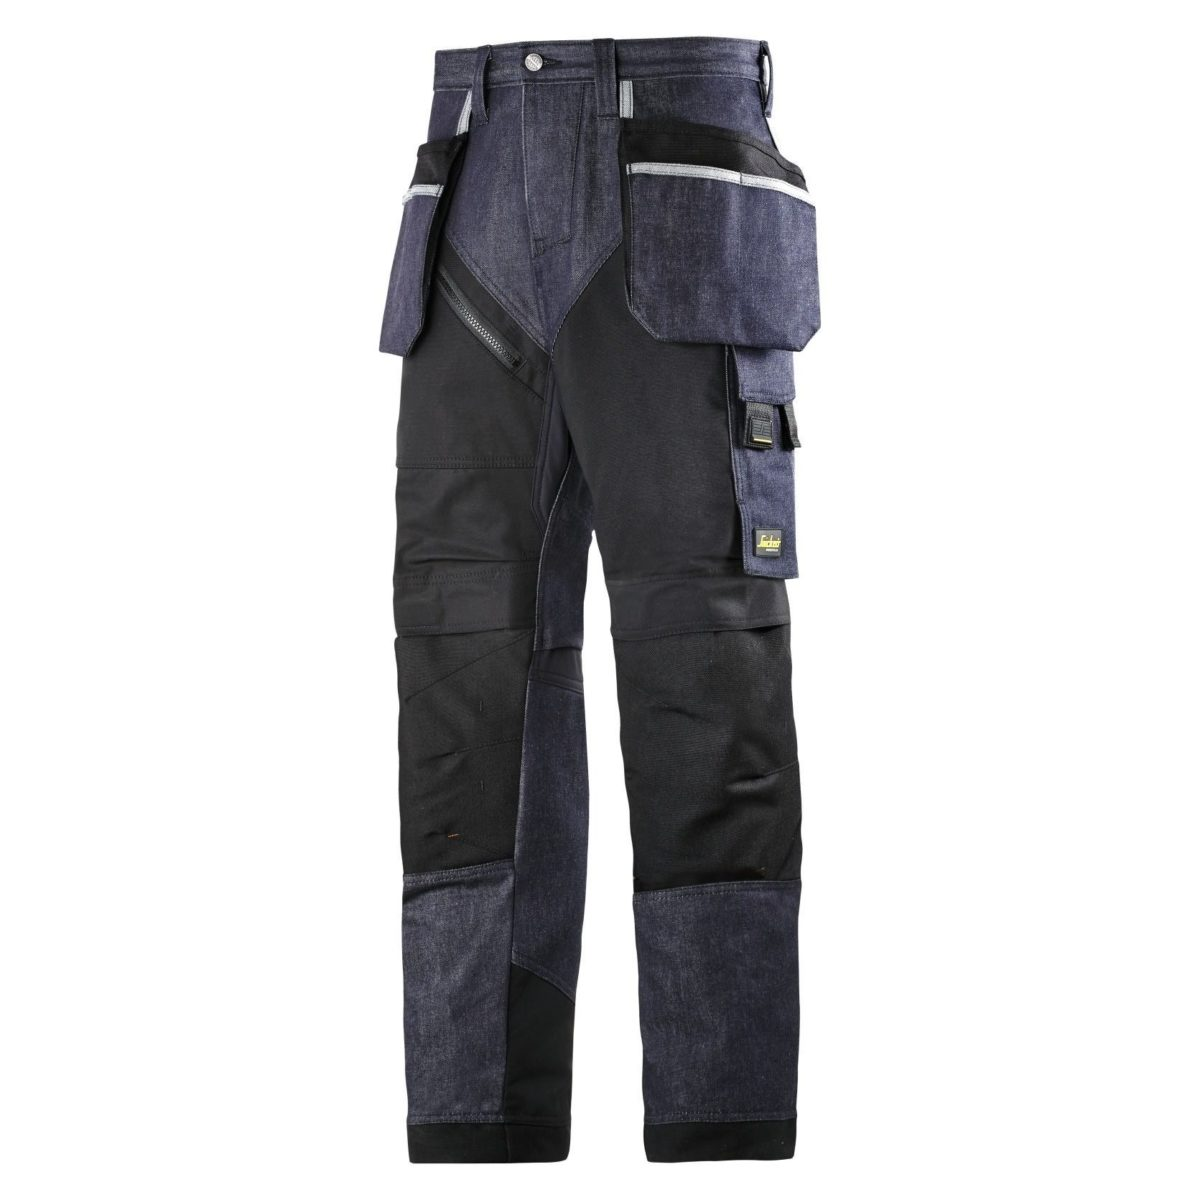 Snickers 6205 RuffWork Denim, Holster Pocket Trousers